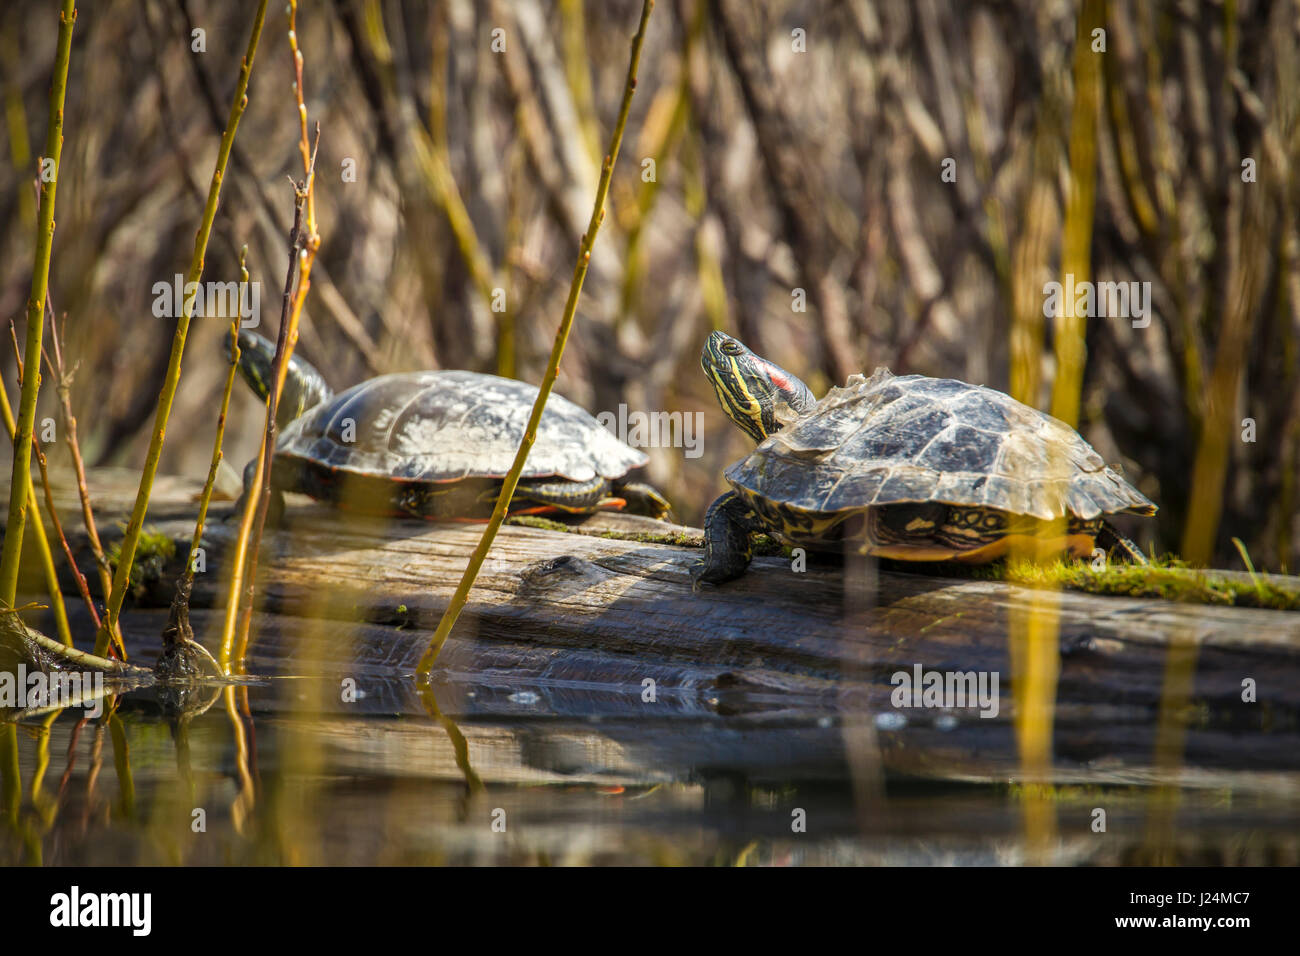 Two western painted turtles are basking on a log in Fernan Lake, Idaho. - Stock Image